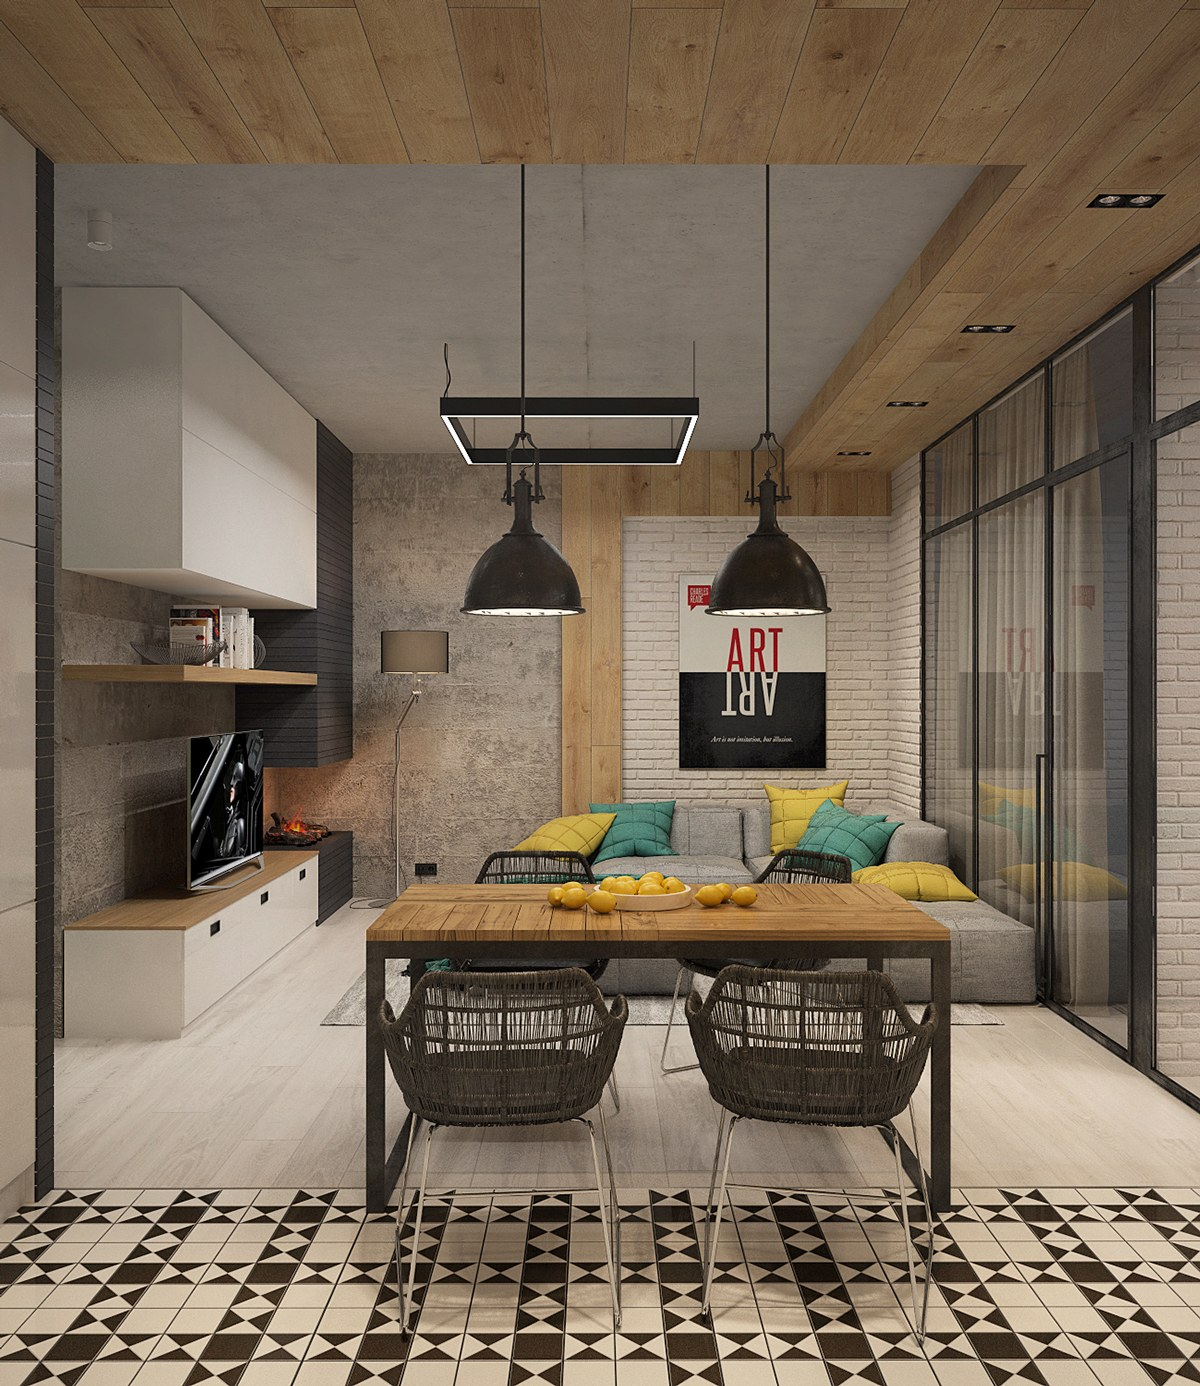 Patterned Tile Floors - Two sleek apartments with interior glass walls